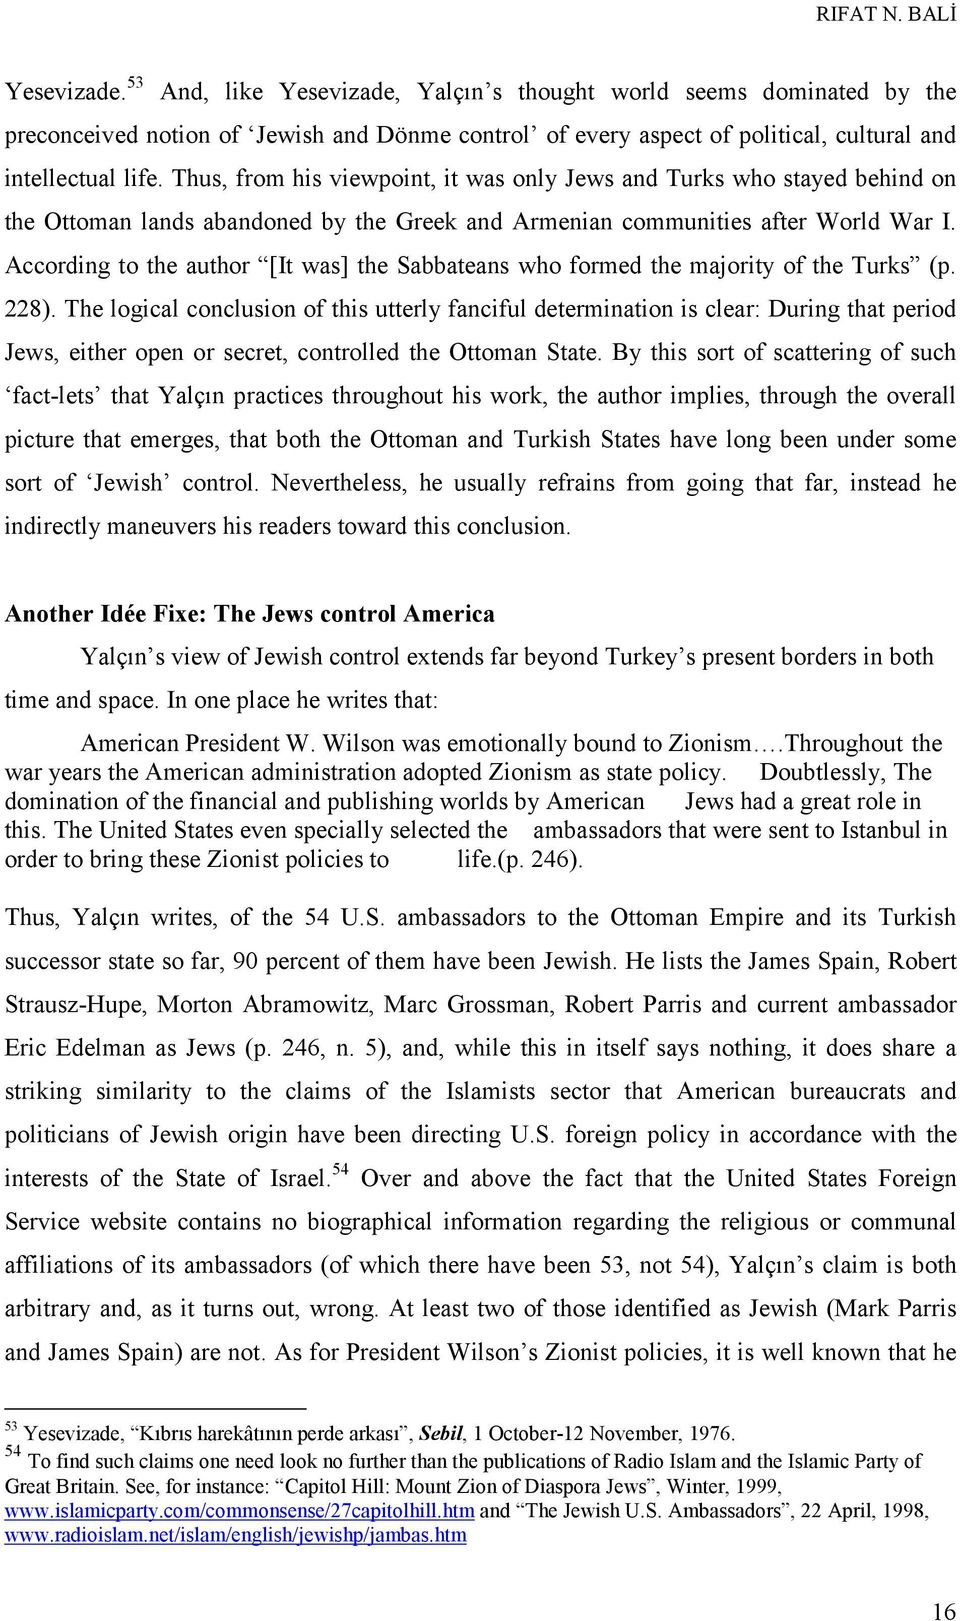 According to the author [It was] the Sabbateans who formed the majority of the Turks (p. 228).